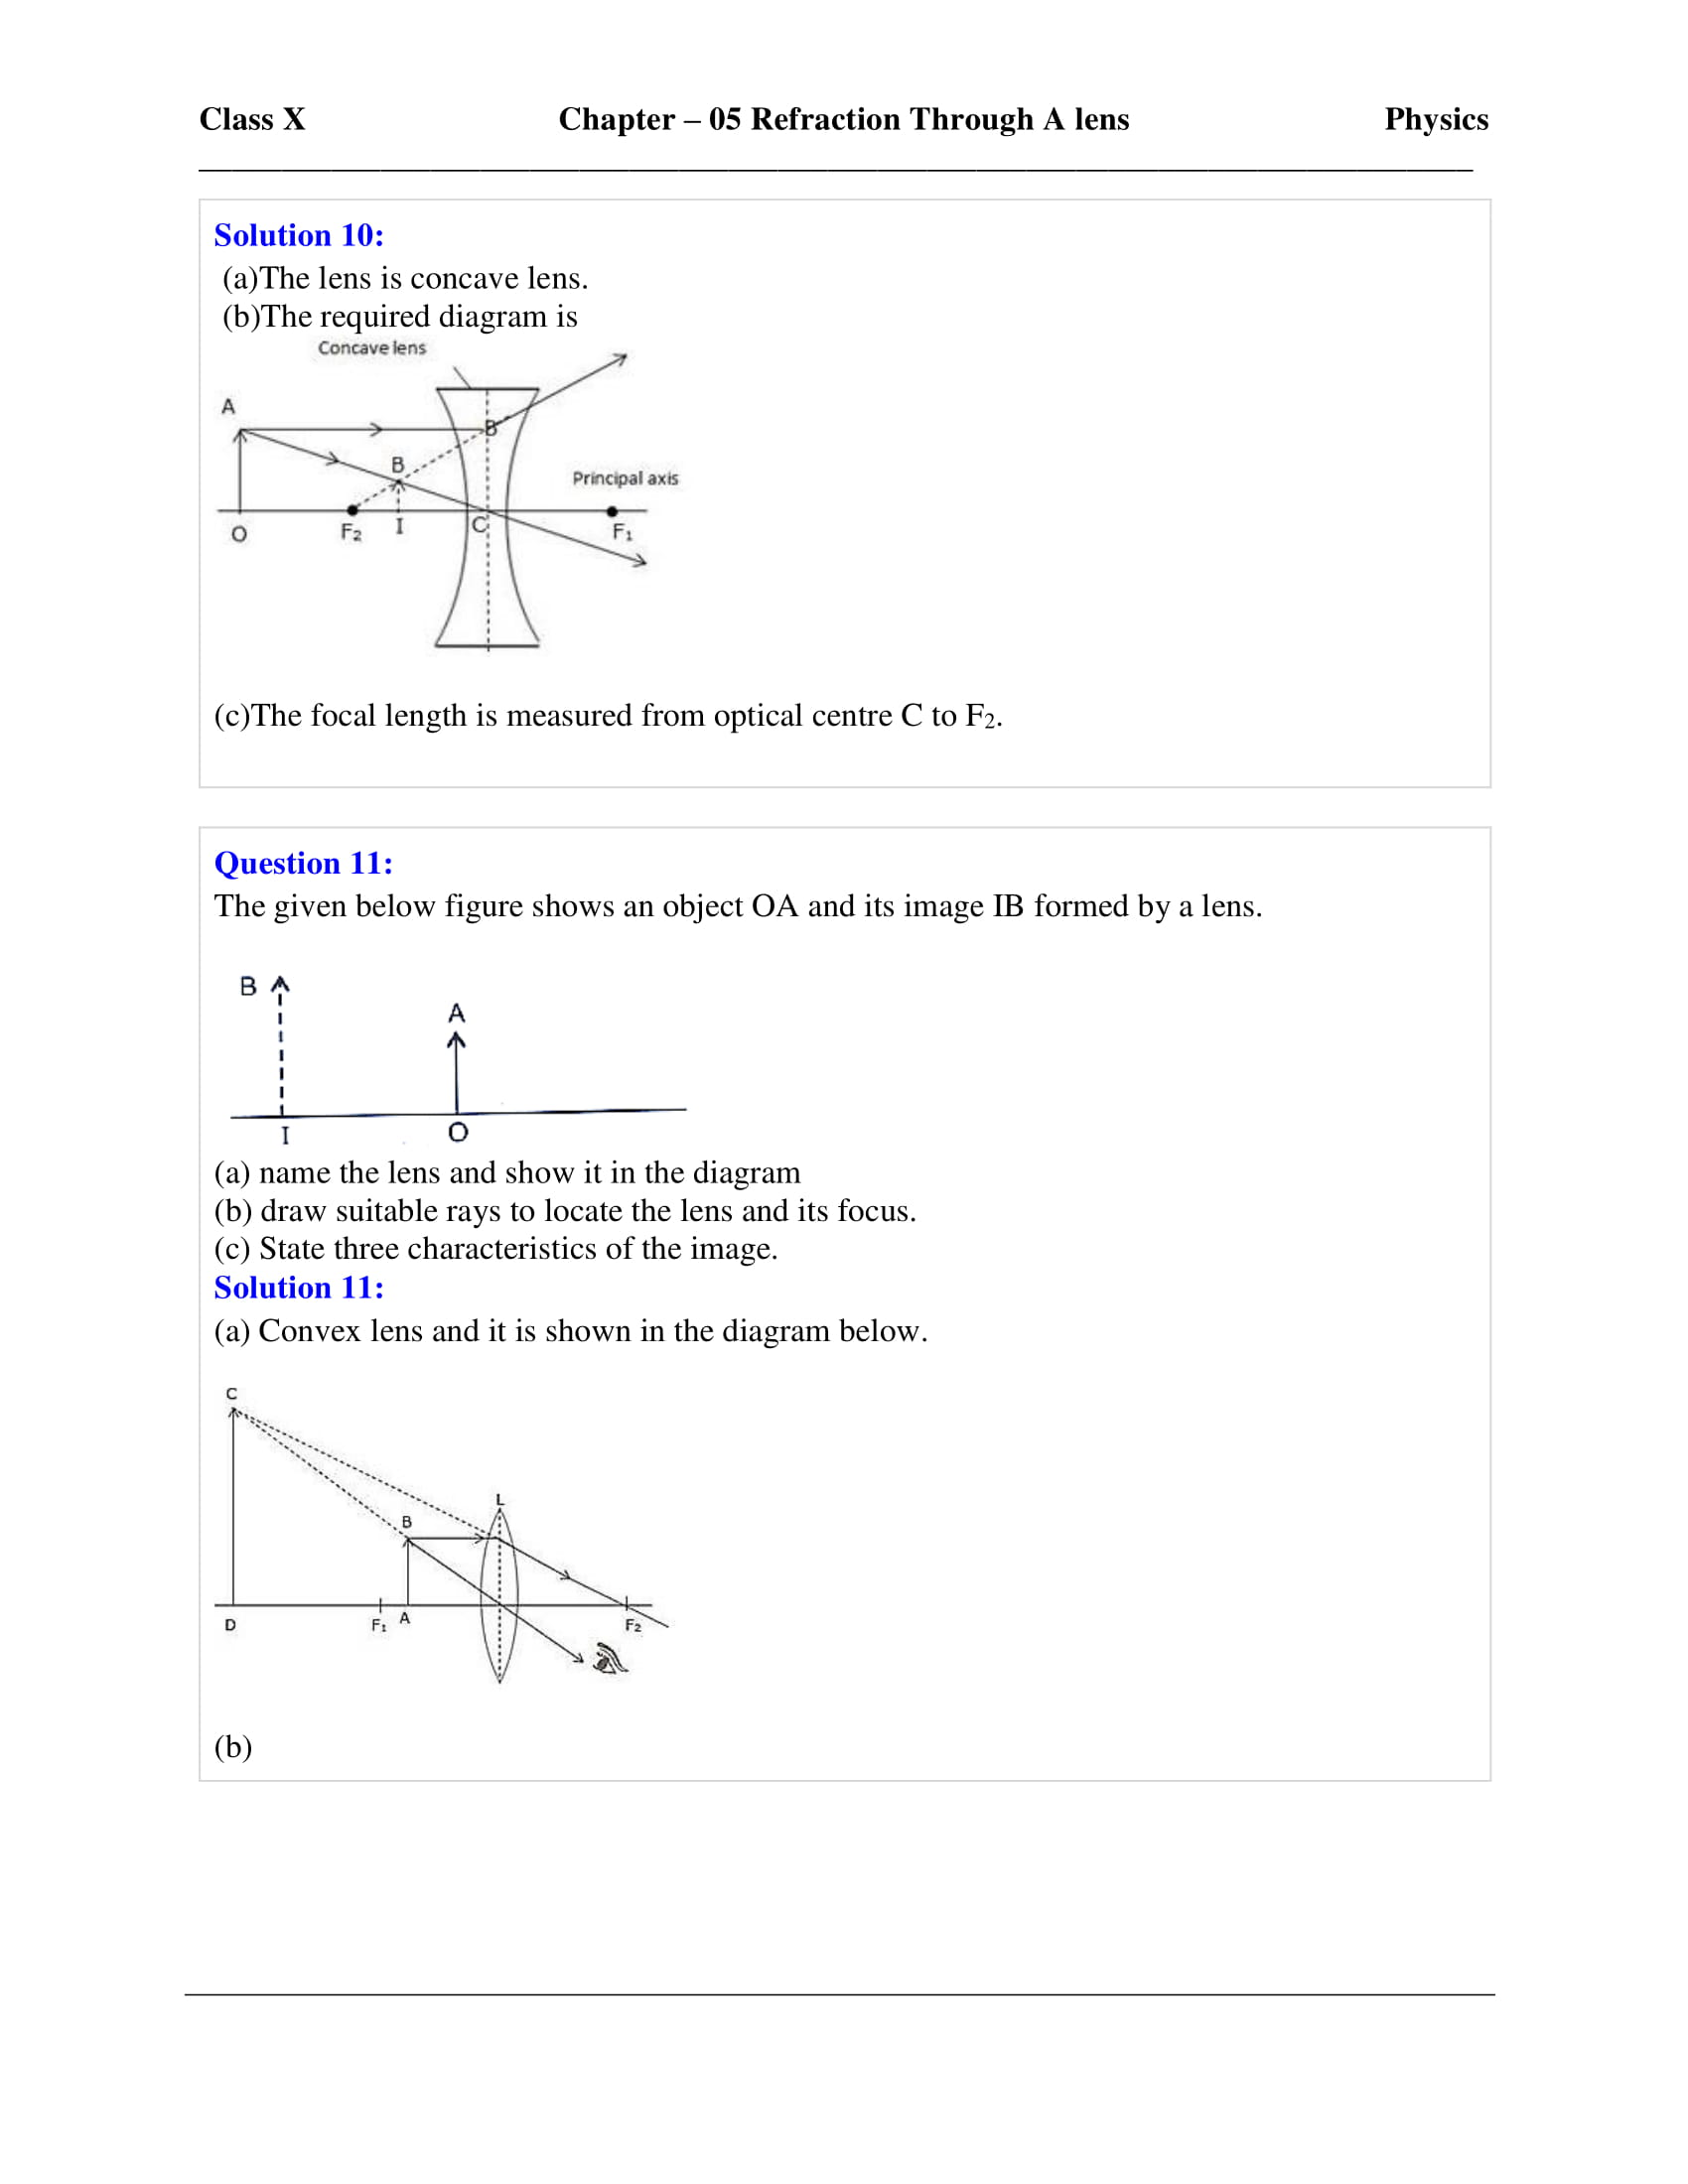 icse-selina-physics-solutions-class-10-chapter-5-refraction-through-a-lens-21